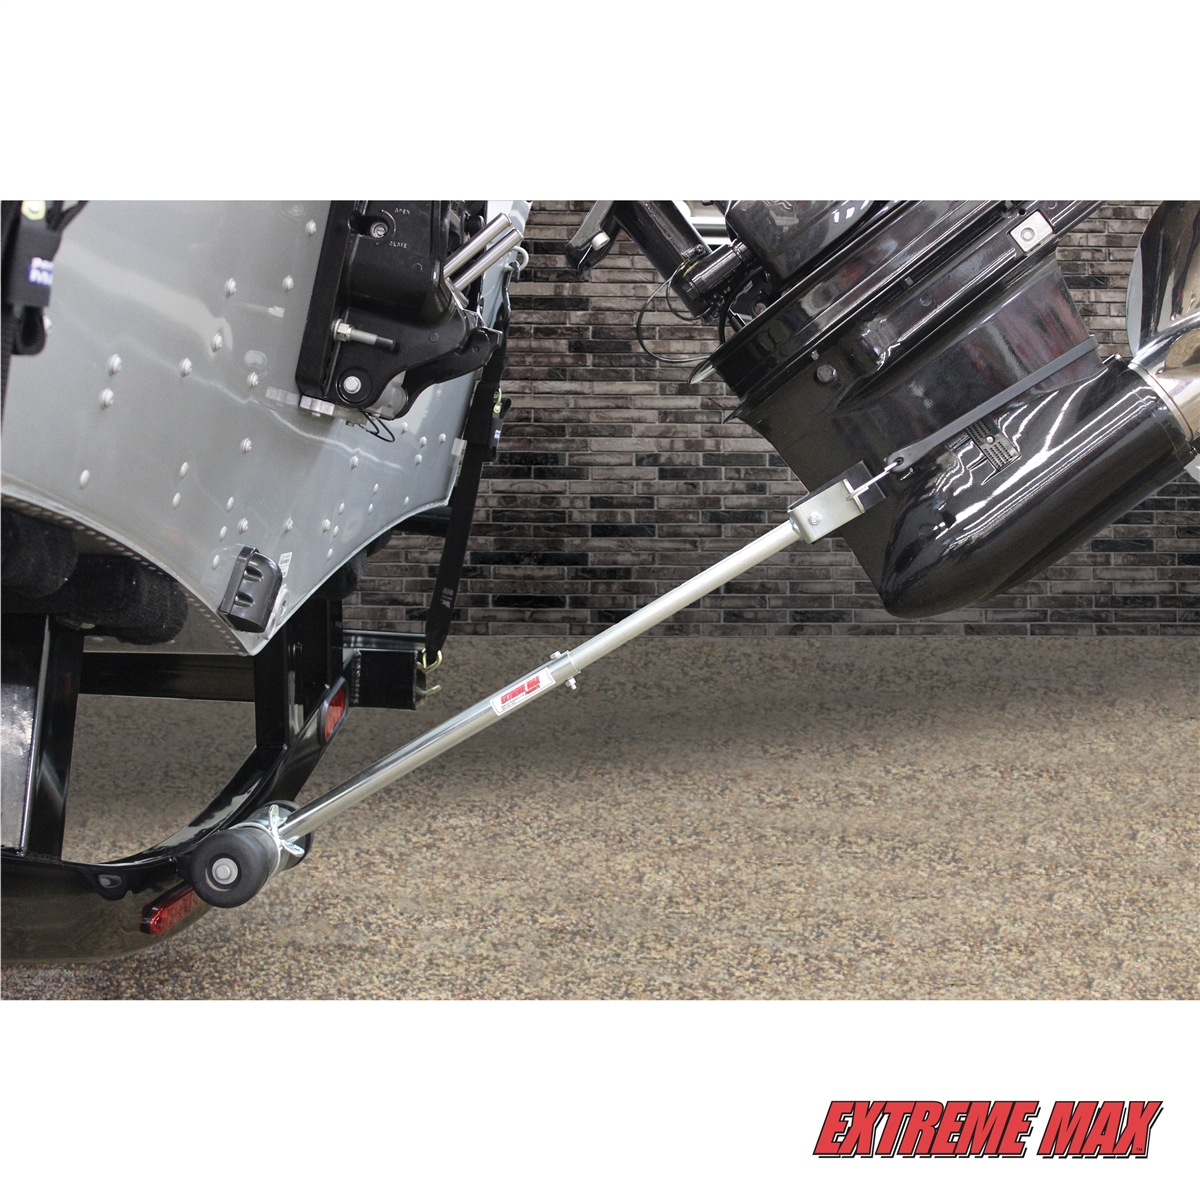 Extreme max straight transom saver 21 to 31 for Best outboard motor warranty